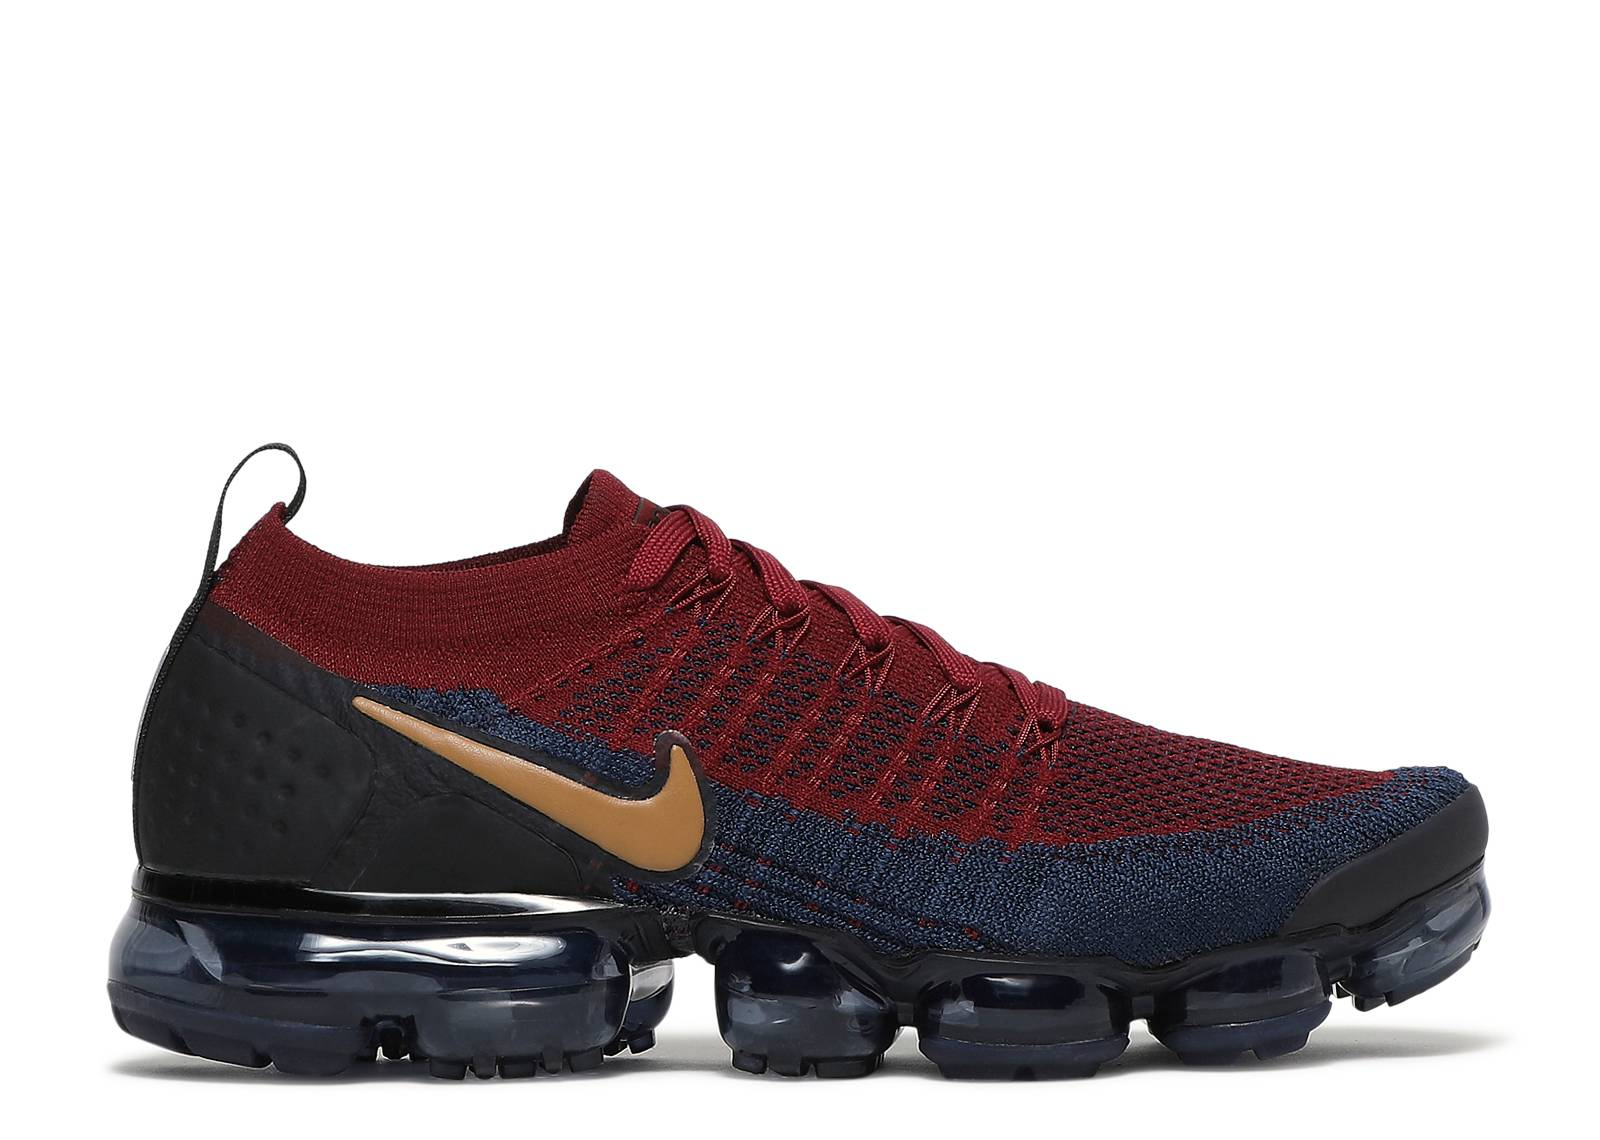 115d07856dc Nike Air Vapormax Flyknit 2 - Nike - 942842 604 - team red wheat ...